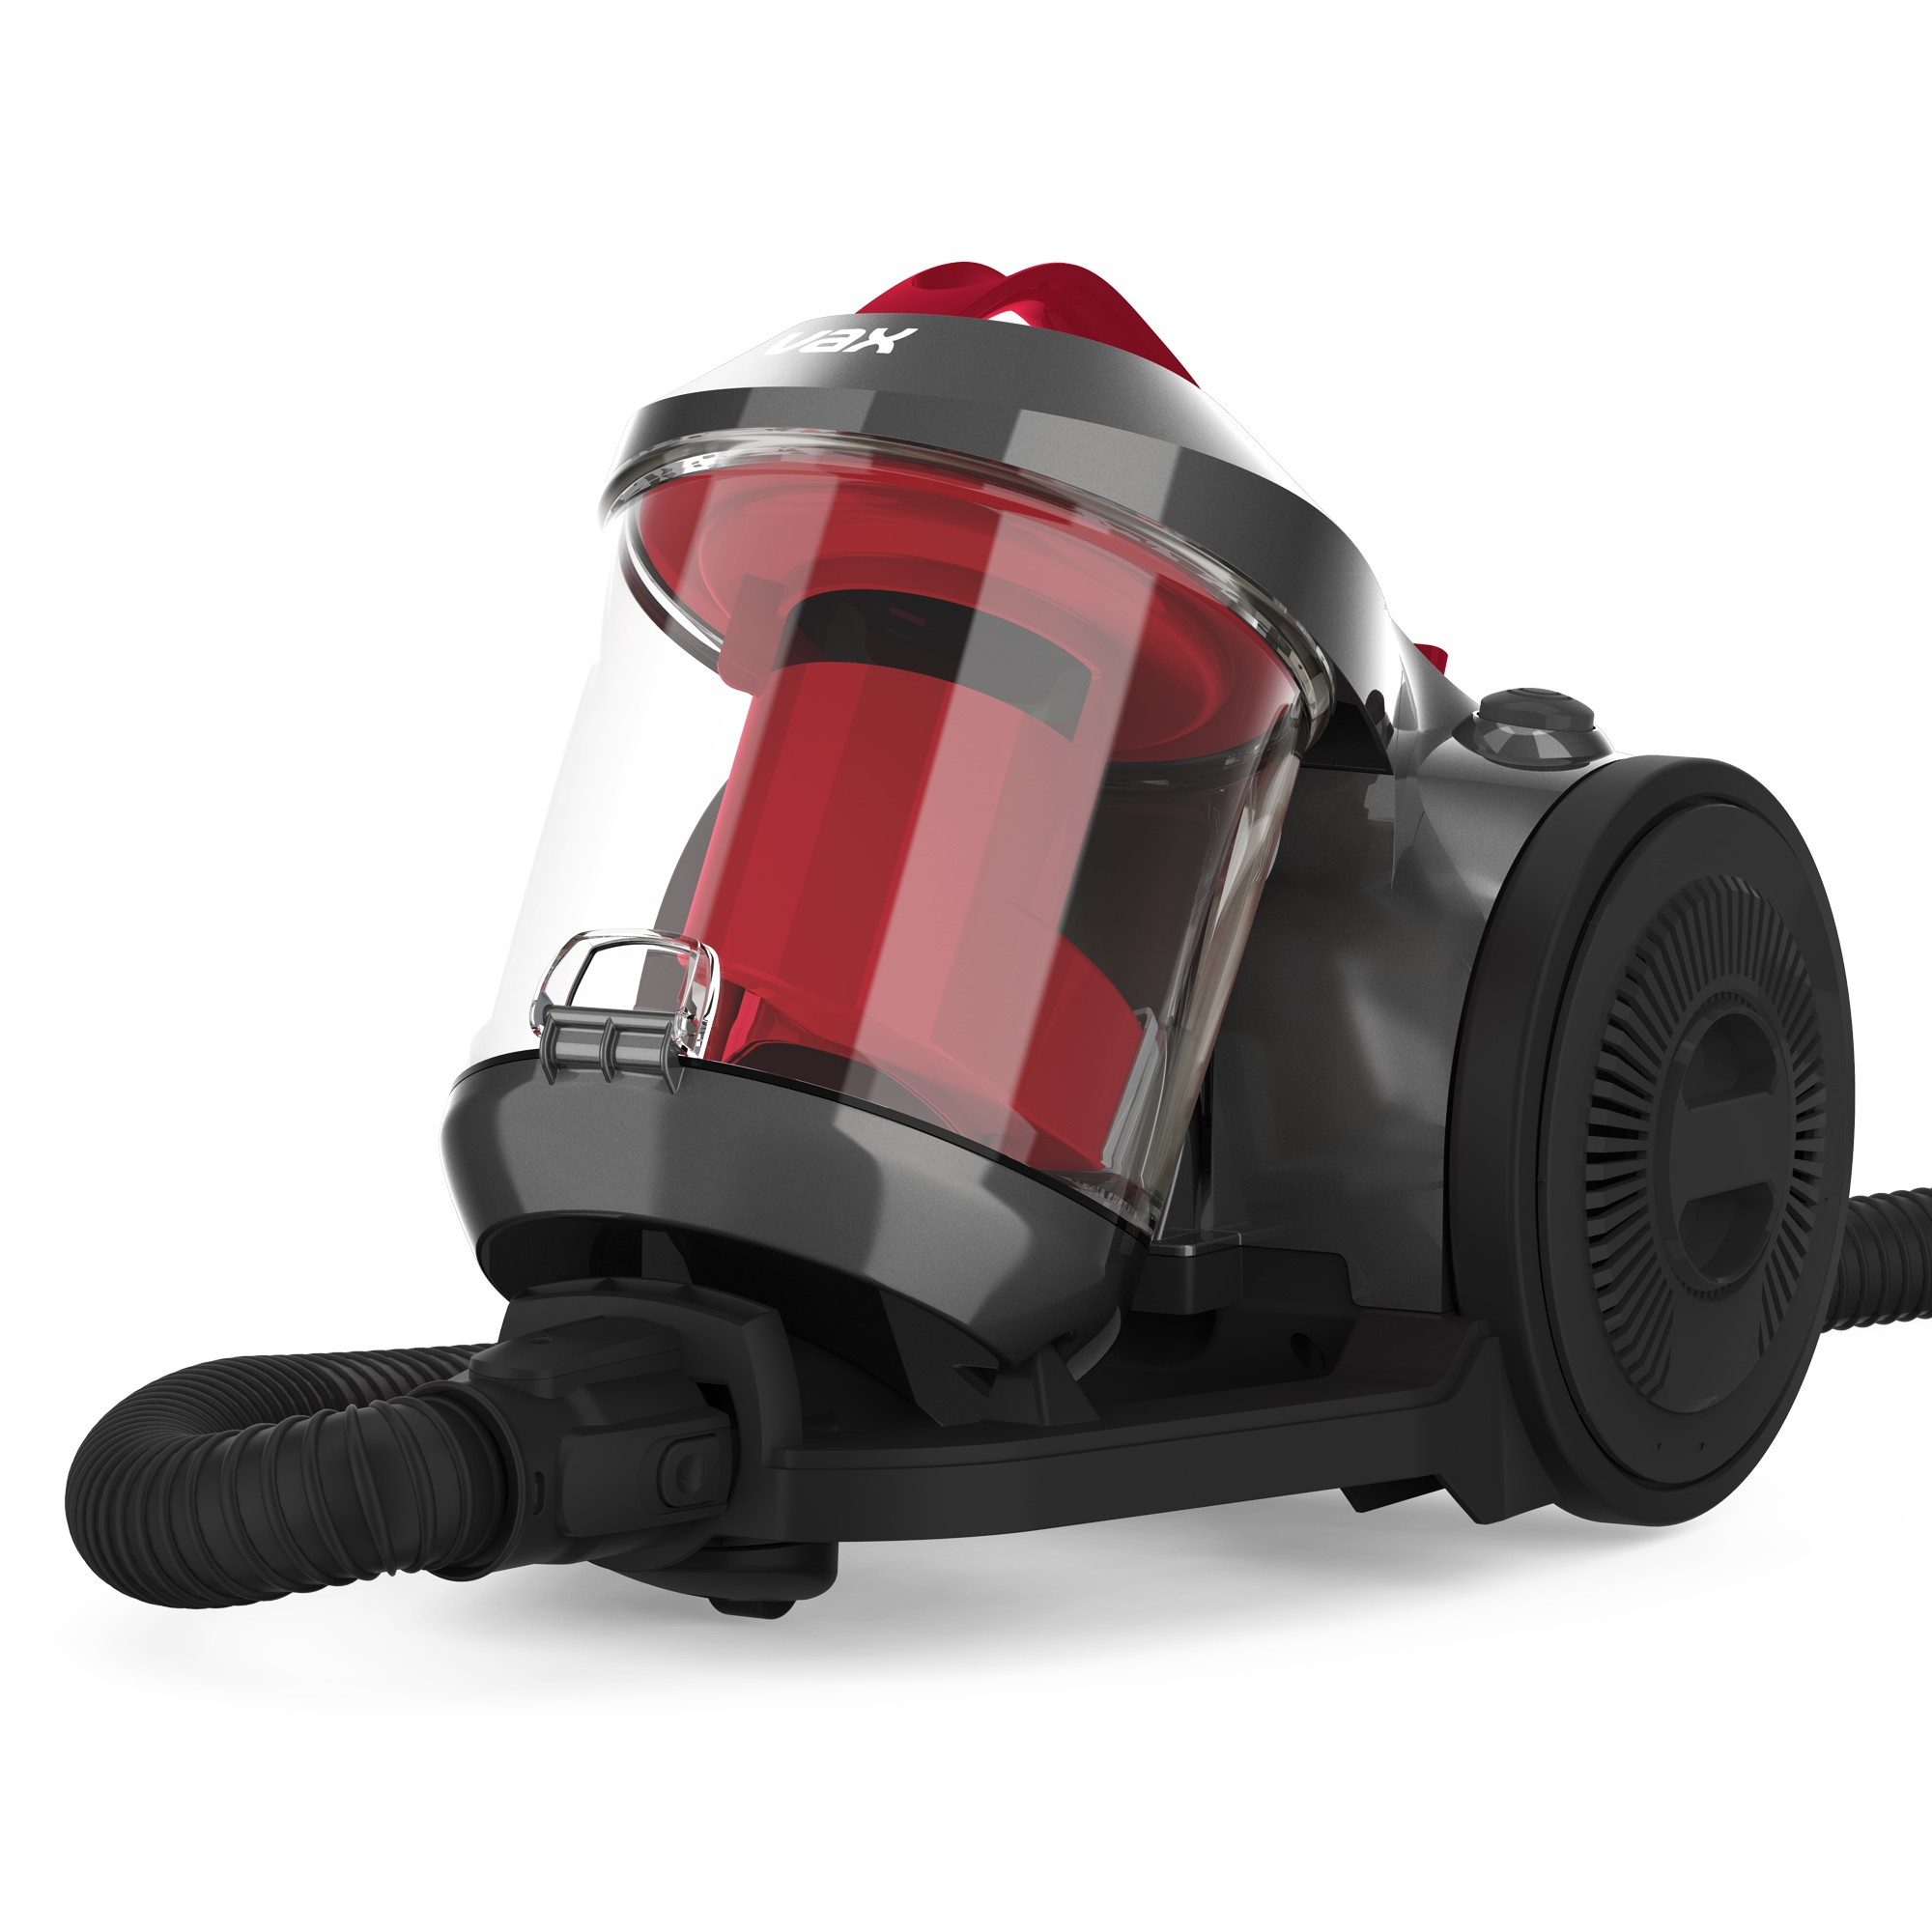 Vax Power Total Home Cylinder Vacuum Cleaner